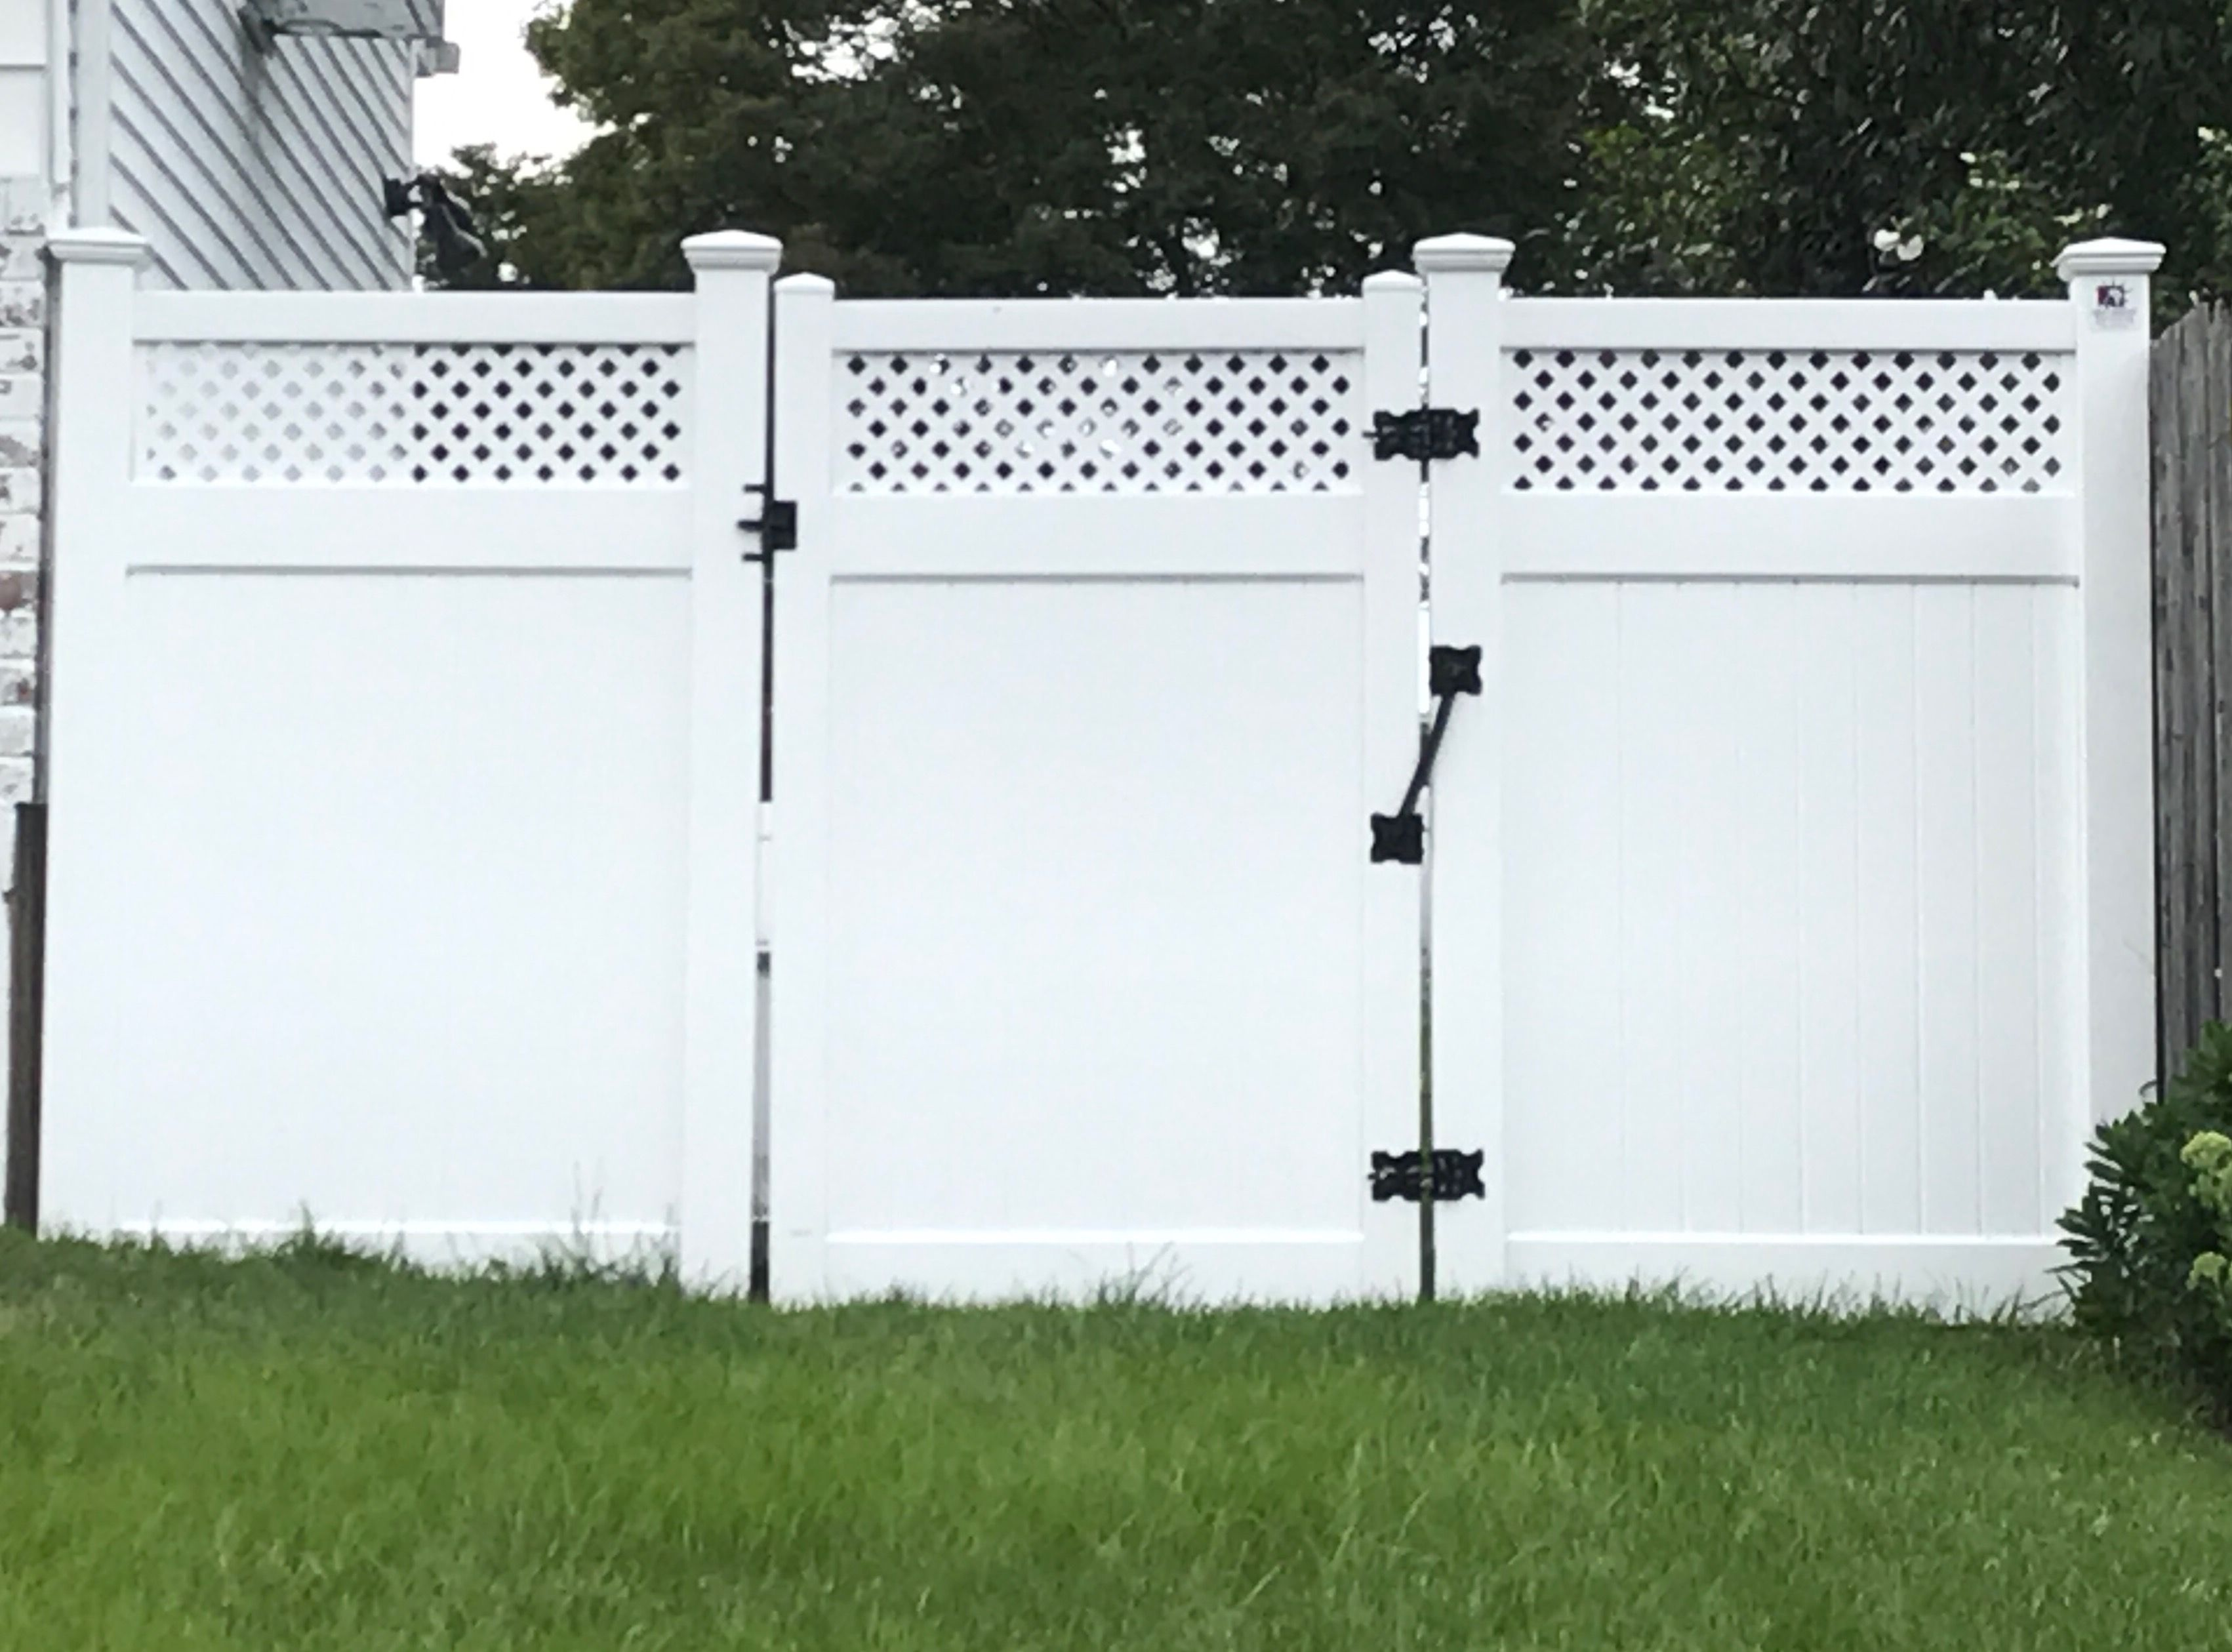 72 Infinity With Privacy Lattice Top Pvc Fence And Gate Fabricated And Installed In Bellmore Ny By Liberty Fenc Pvc Fence Gates And Railings Backyard Fences